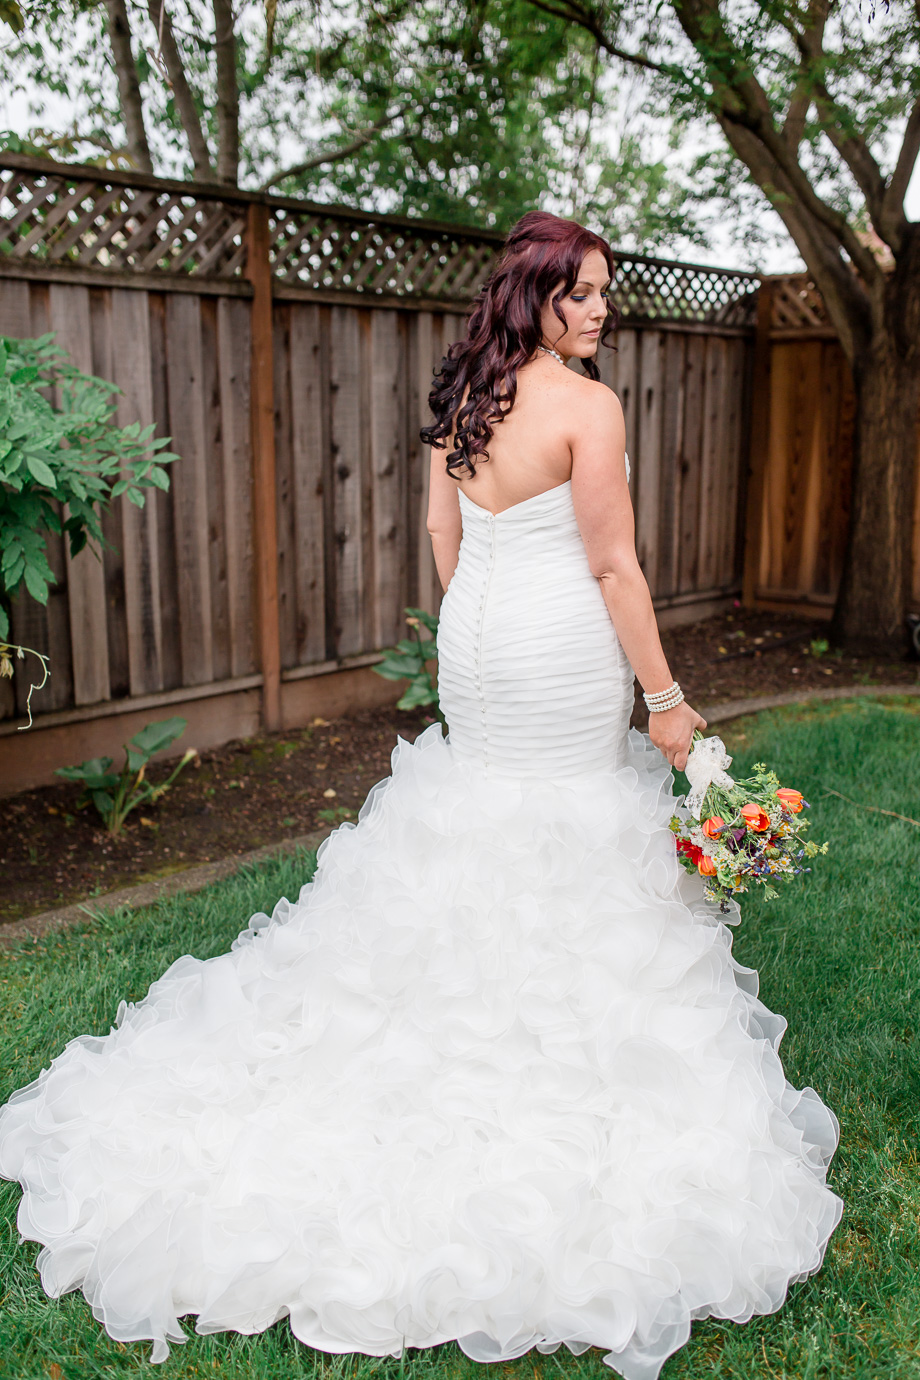 stunning bride with a beautiful ruffled wedding dress - California rainbow themed wedding